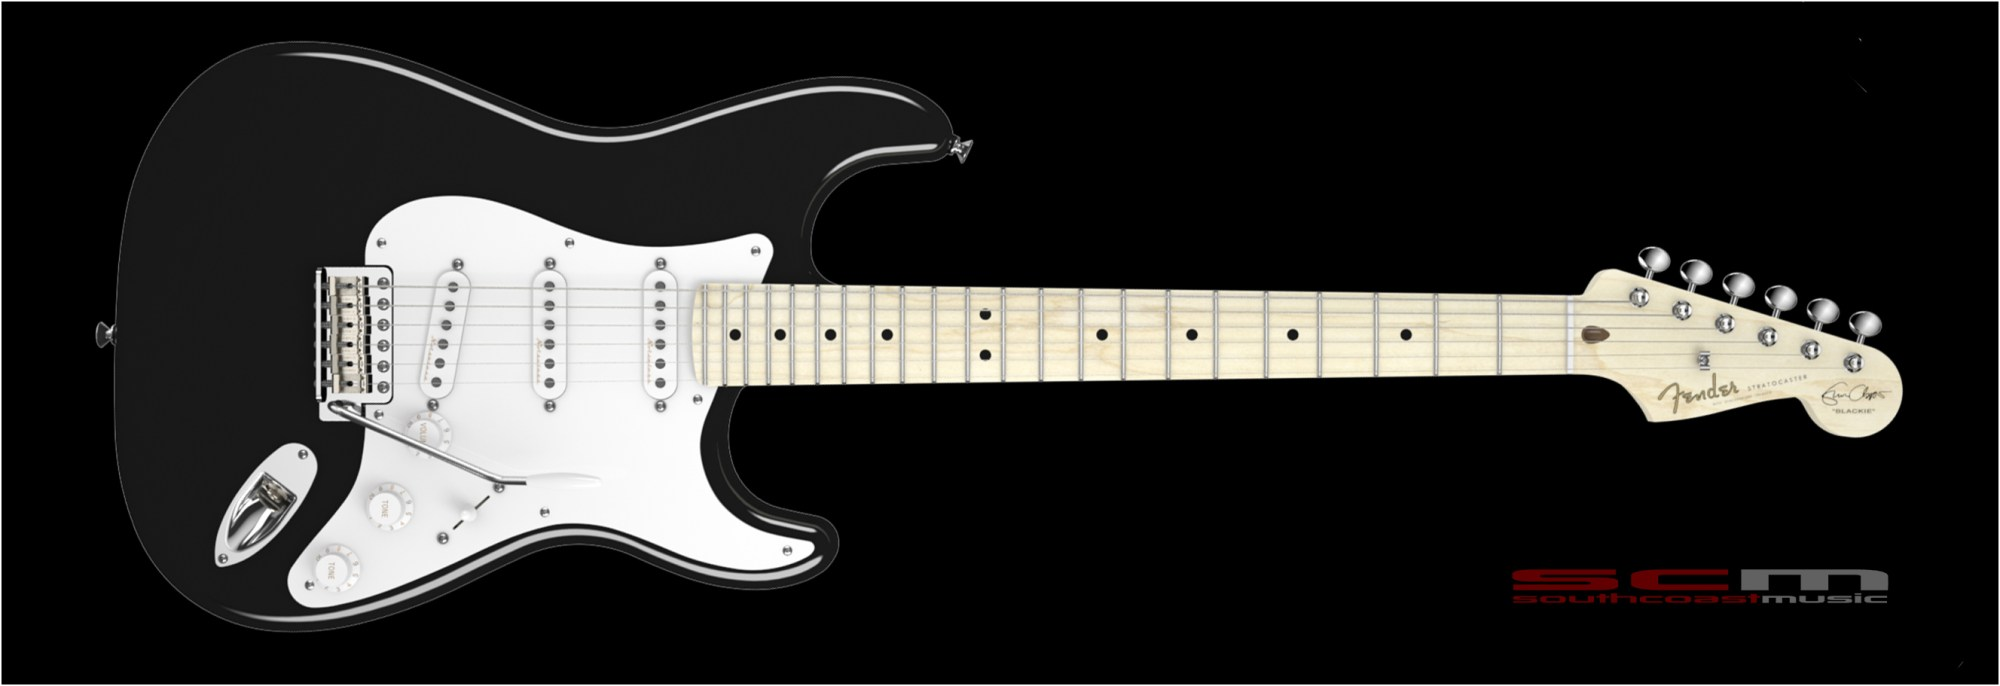 hight resolution of fender eric clapton signature stratocaster blackie